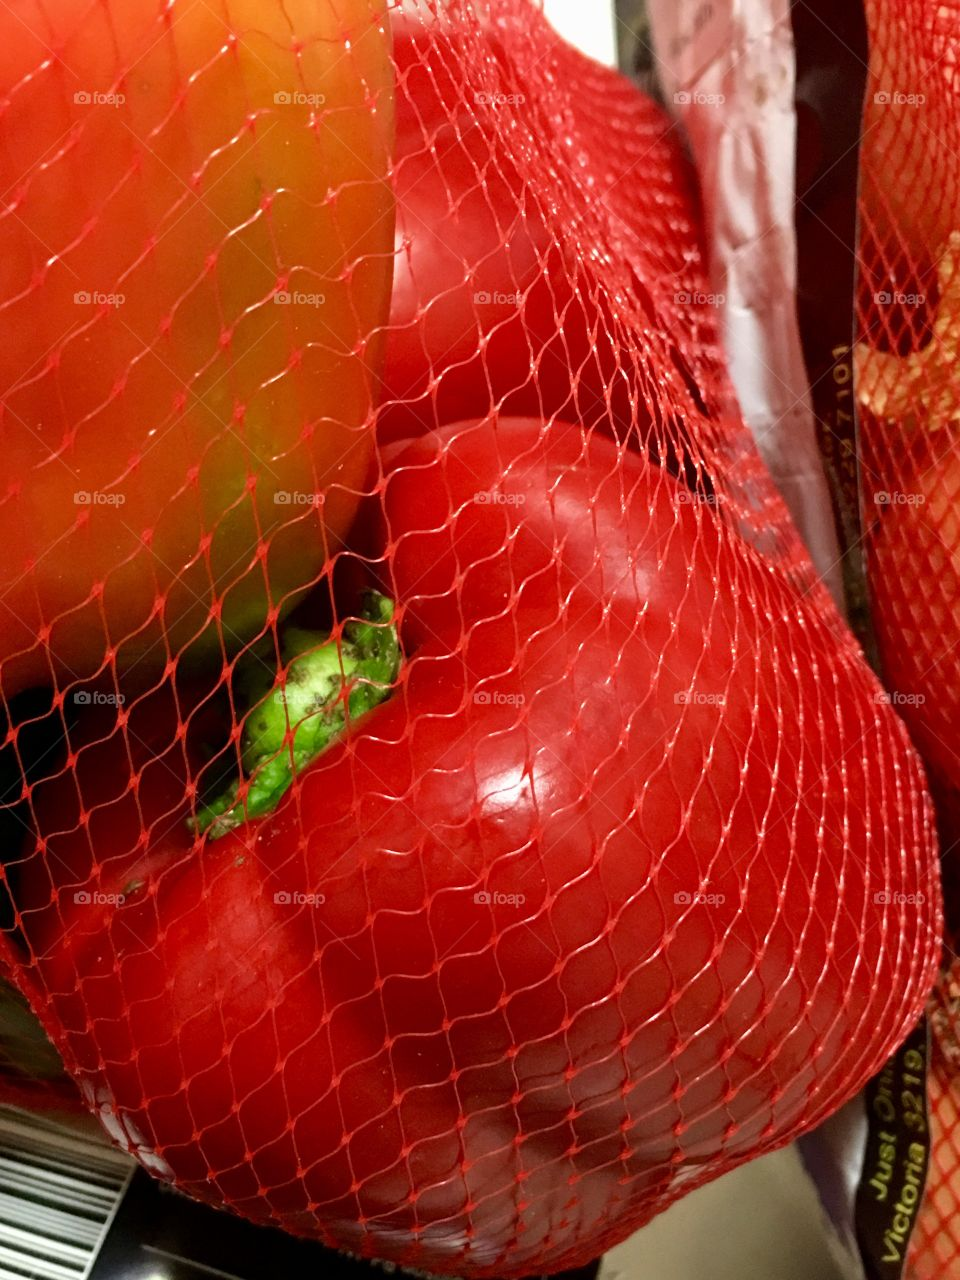 Red sweet bell pepper capsicum in red plastic mesh